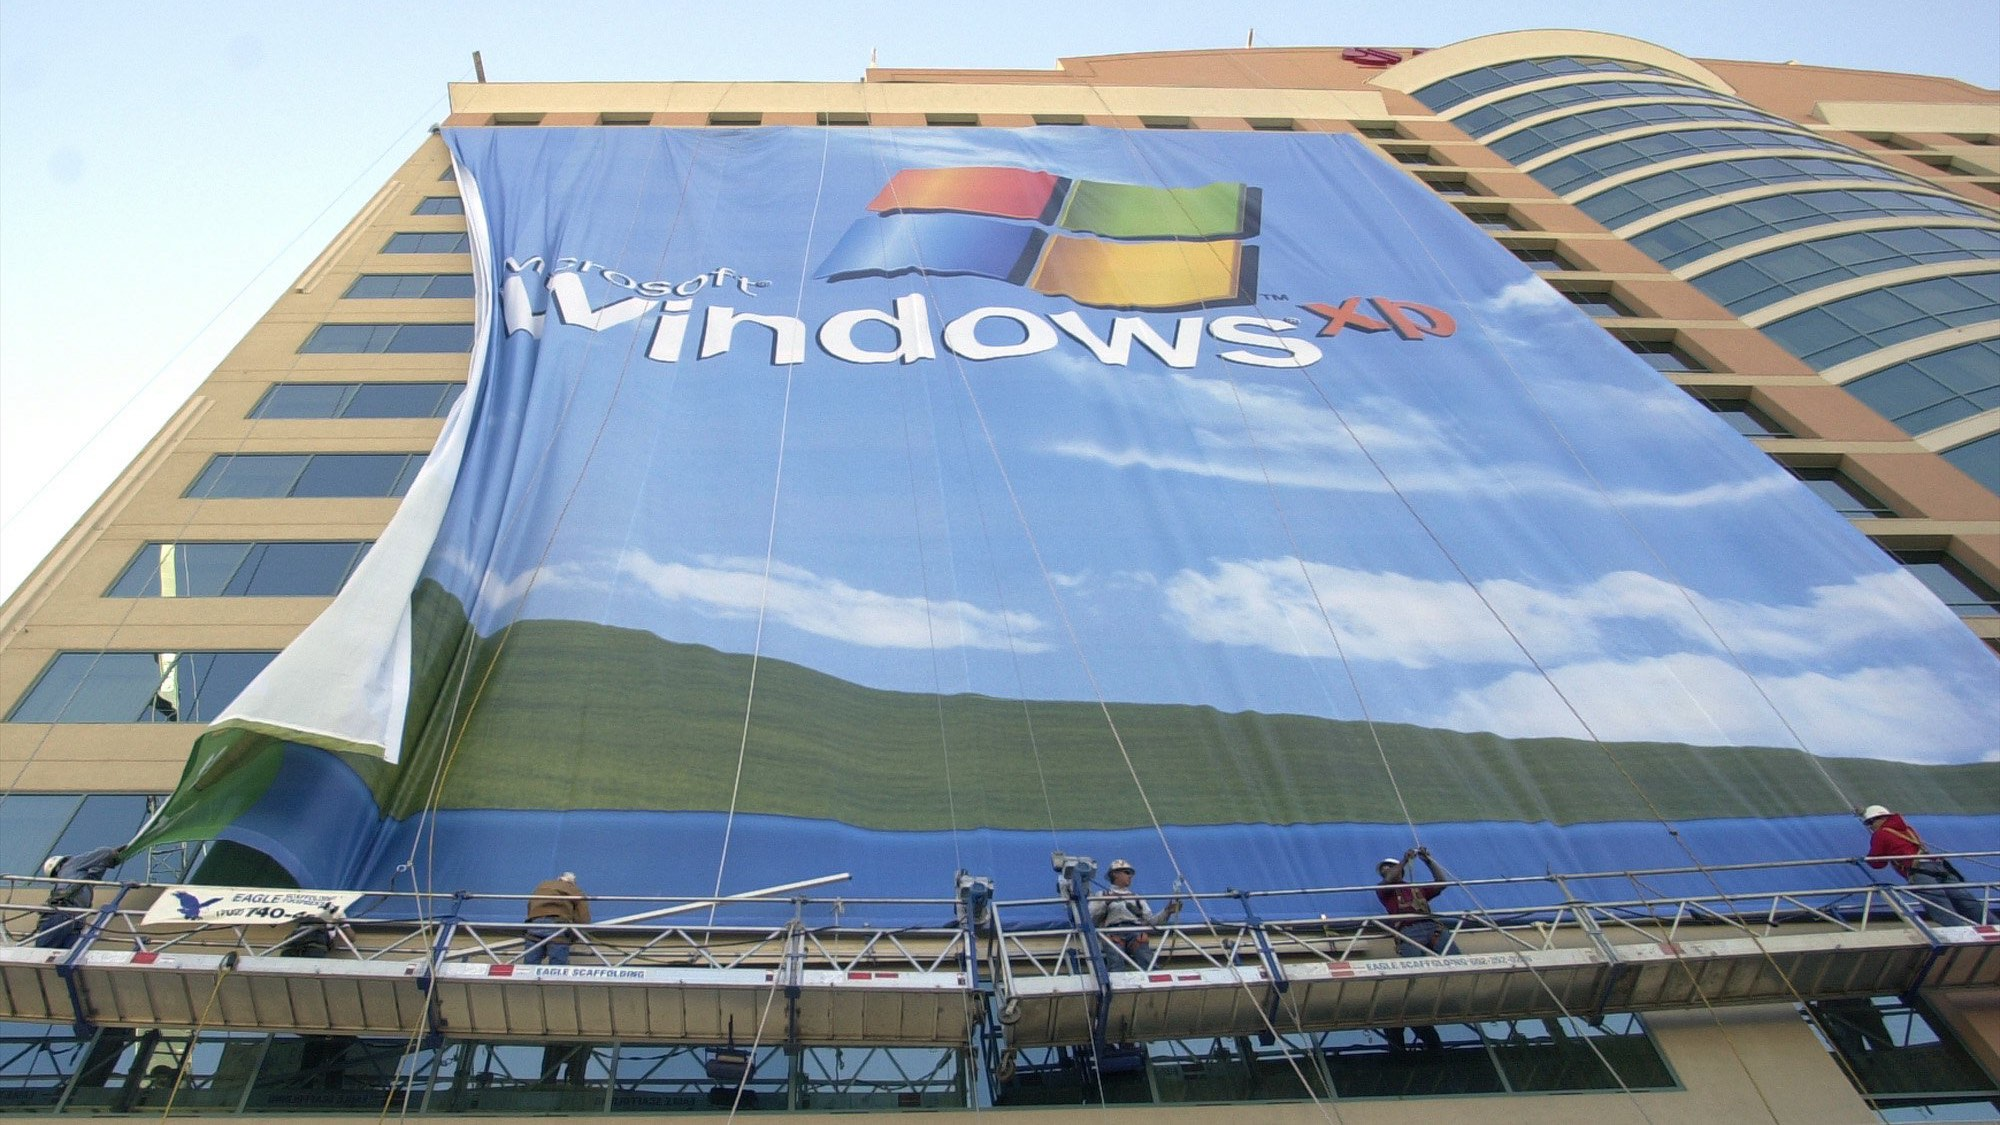 In this Nov. 8 2001 file photo, workers install a 10-story Windows XP banner on a hotel near the Las Vegas Convention Center in Las Vegas. On Tuesday, April 8, 2014, Microsoft will end support for its still popular Windows XP. With an estimated 30 percent of businesses and consumers still using the 12-year-old operating system, the move could put everything from the data of major financial institutions to the identities of everyday people in danger if they don't find a way to upgrade soon. (AP Photo/Joe Cavaretta, File)